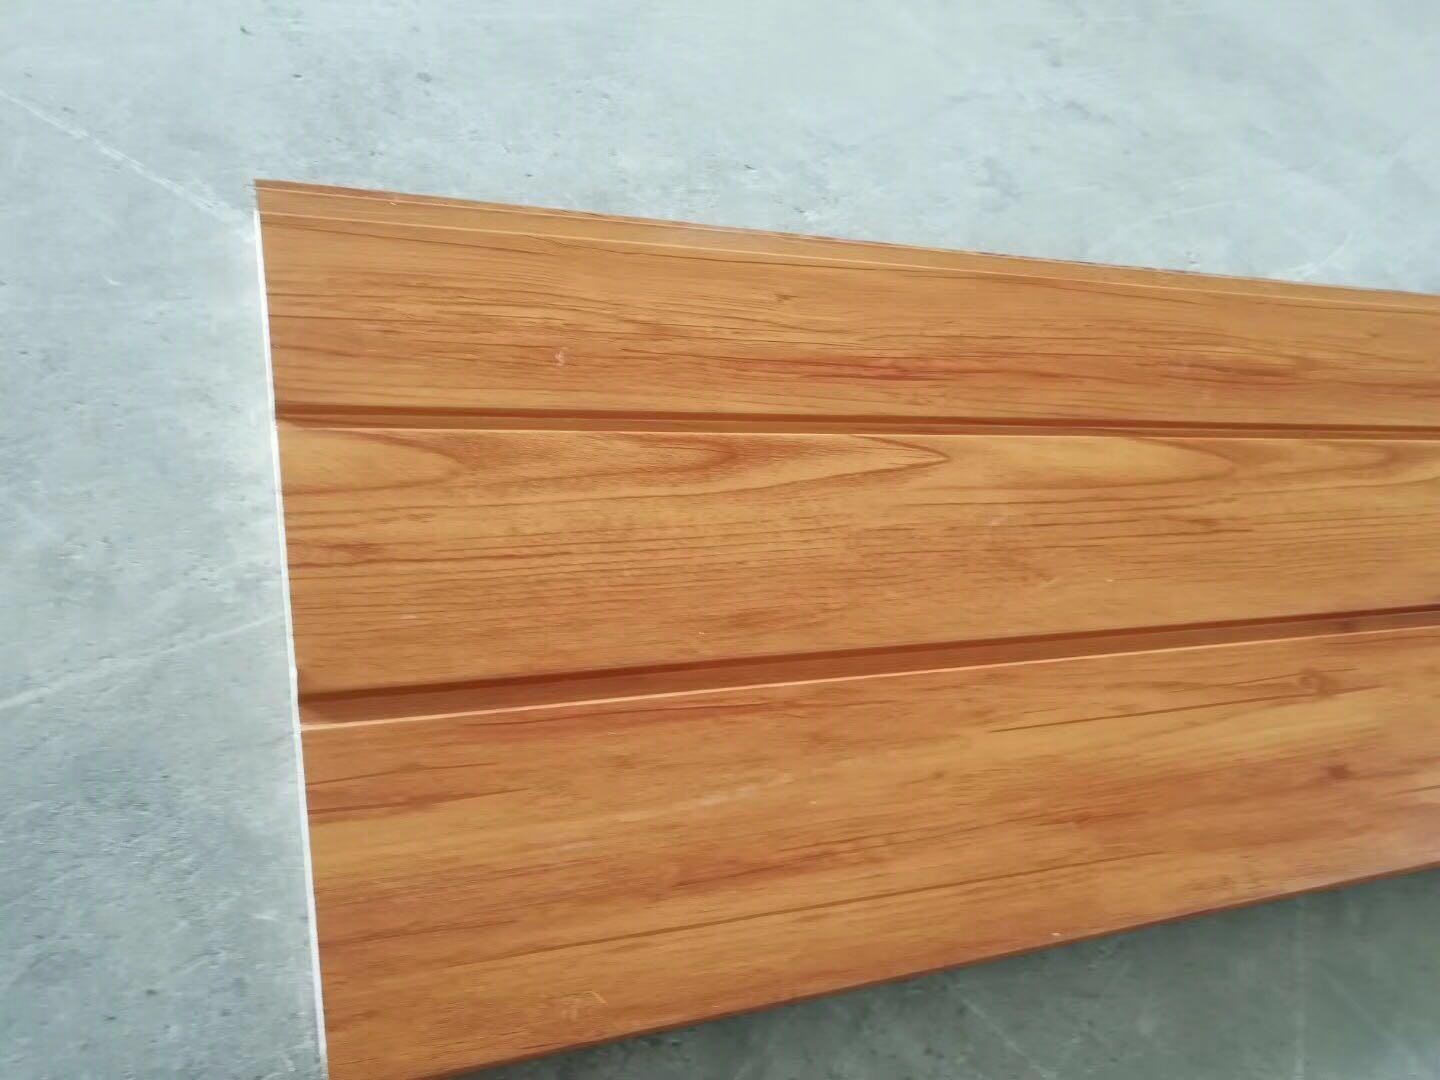 Imitation wood grain board Thermal insulation decorative board 2